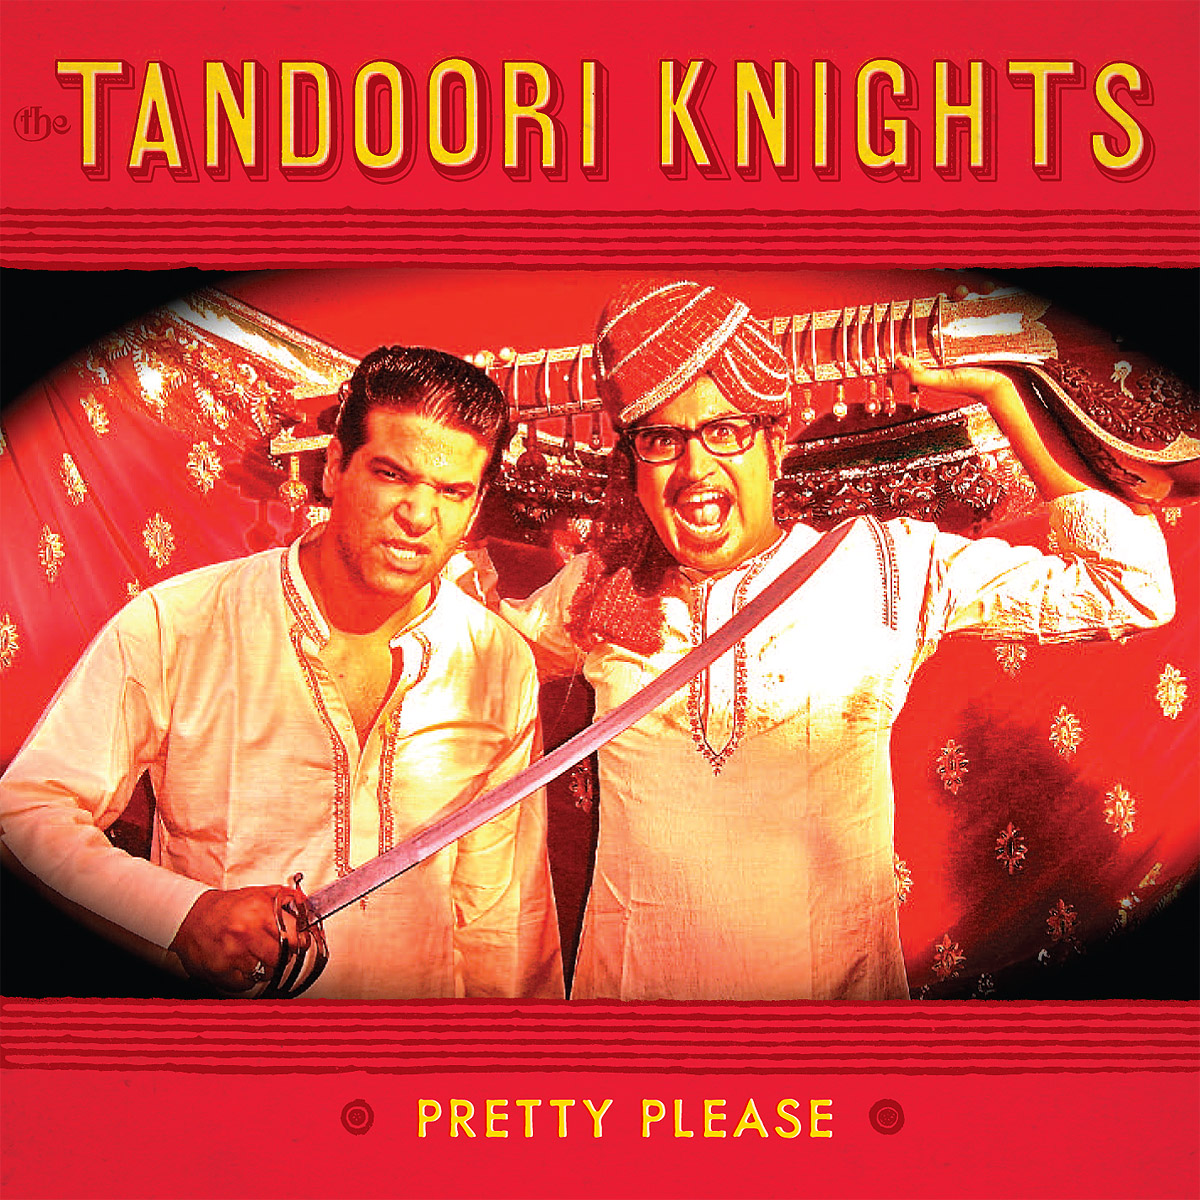 The Tandoori Knights - Pretty Please 45 sleeve